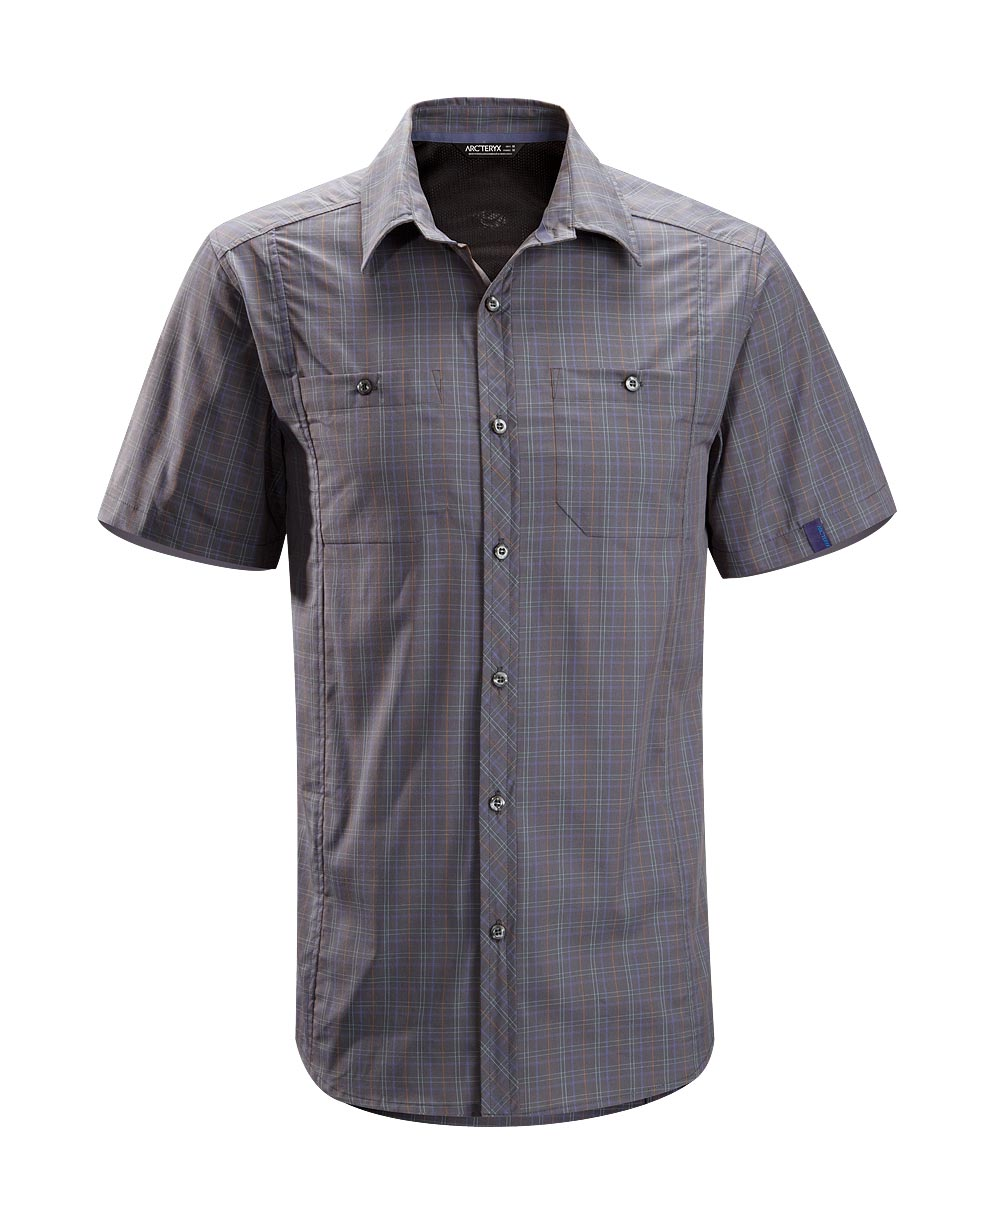 Arcteryx Men Tungsten Borderline Shirt SS - New